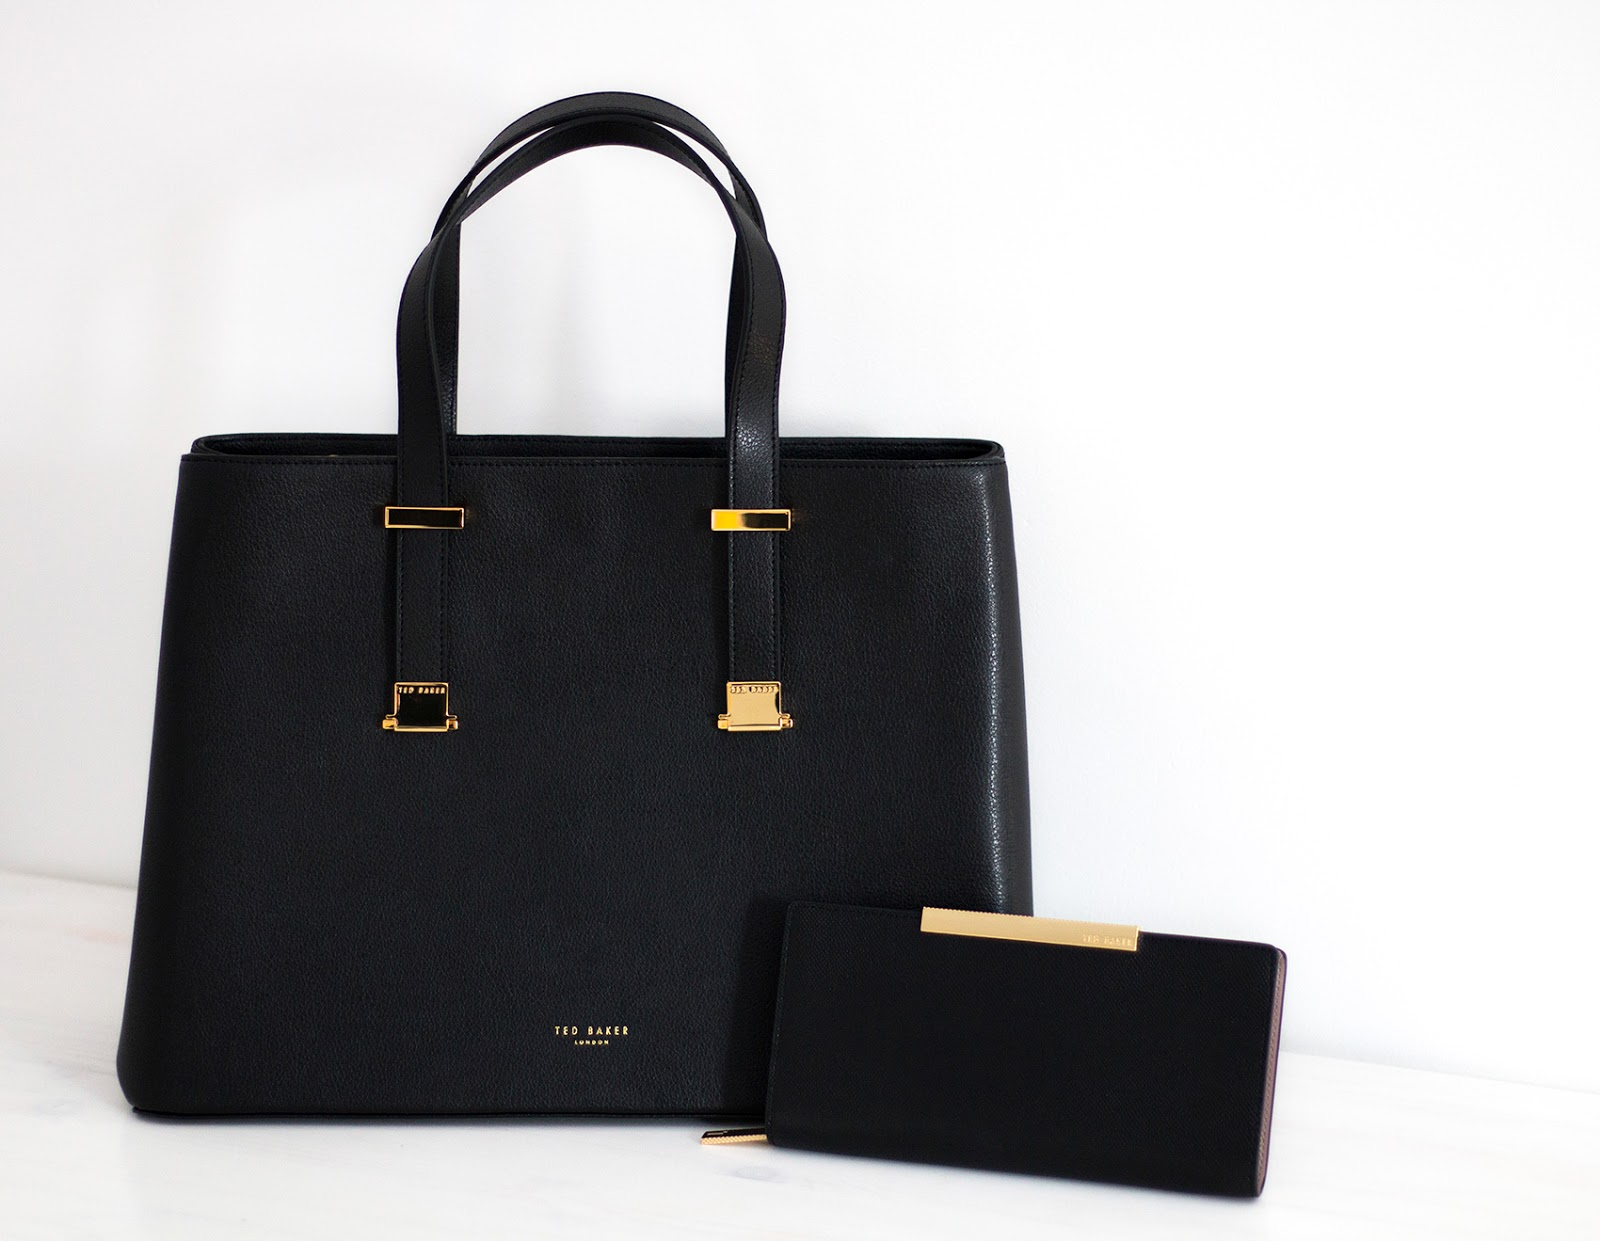 Black Ted Baker handbag and purse